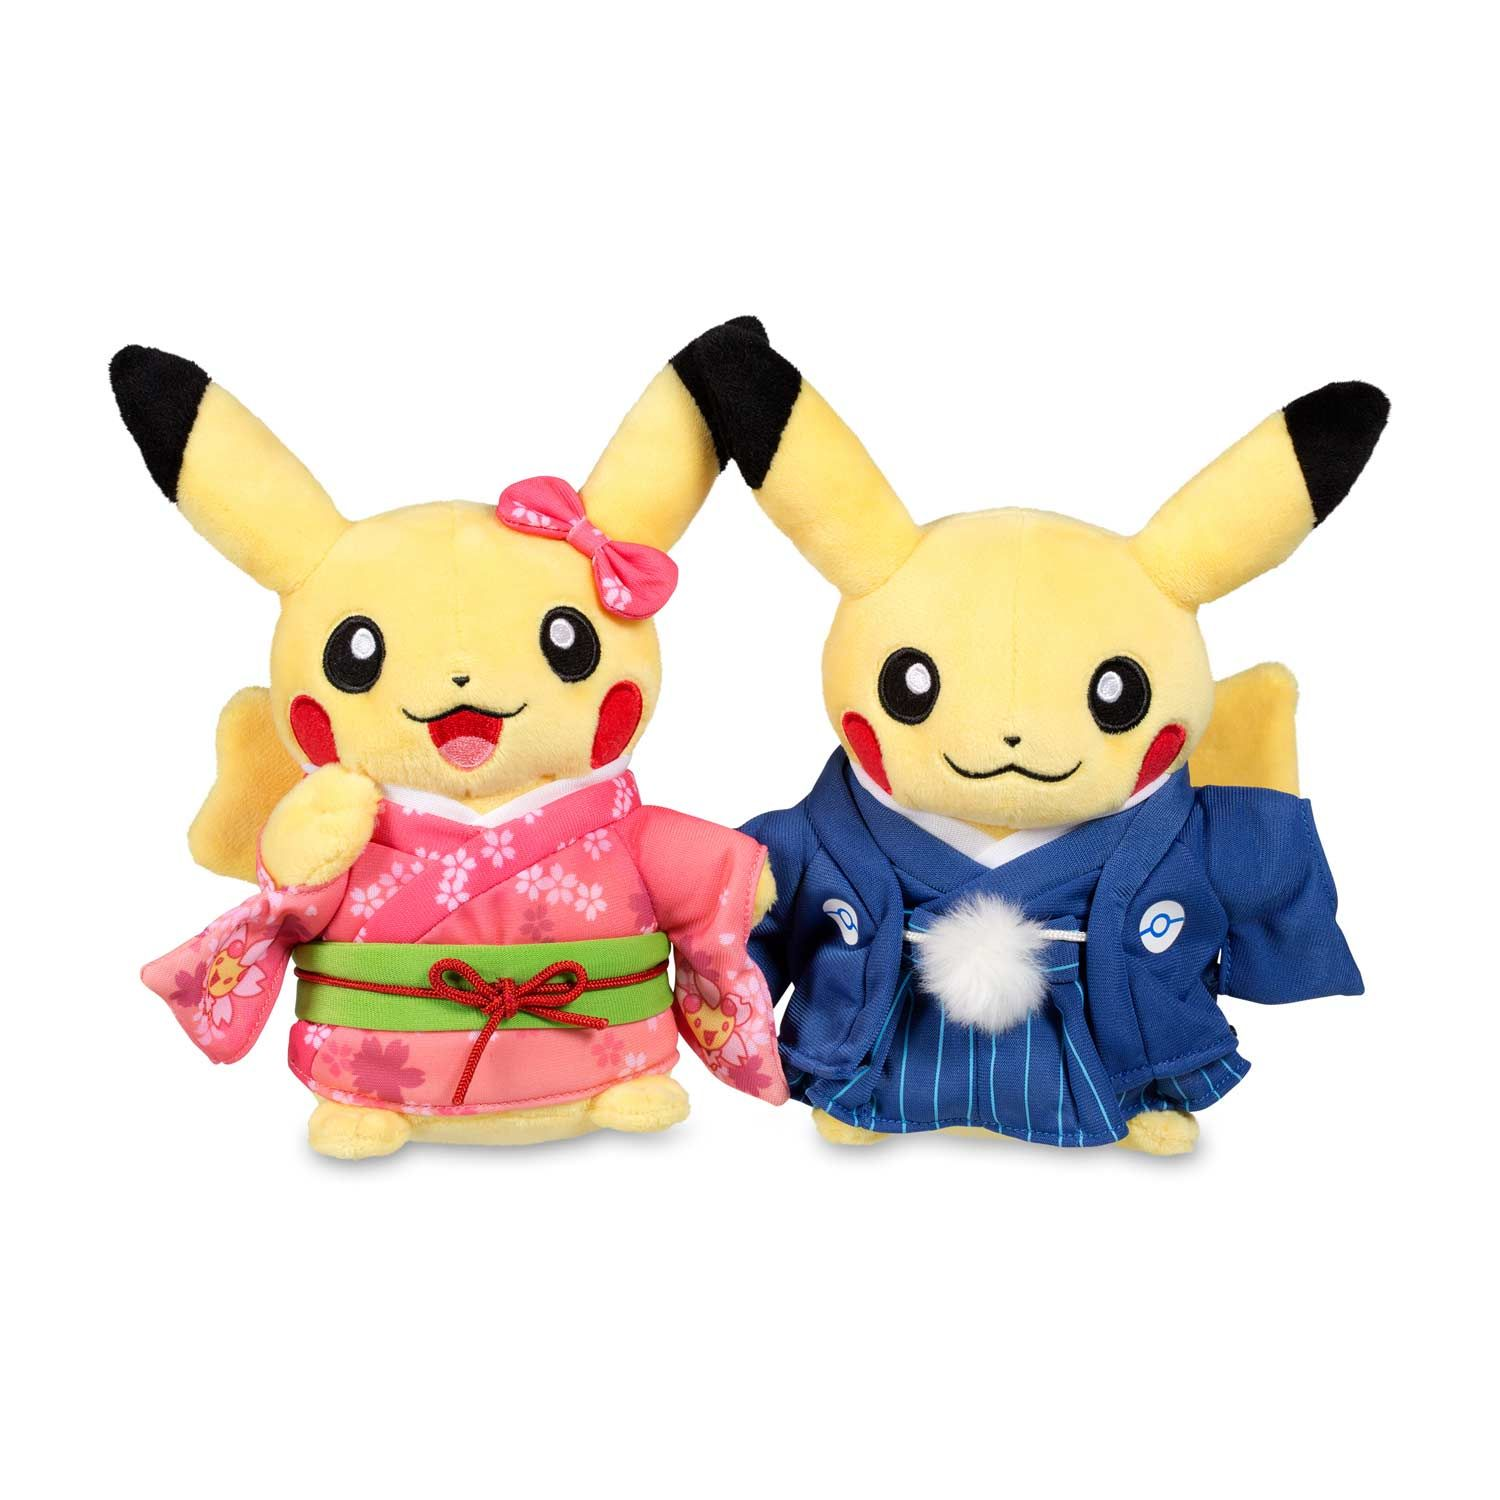 Official Paired Pikachu Celebrations Plush Ready To Celebrate New